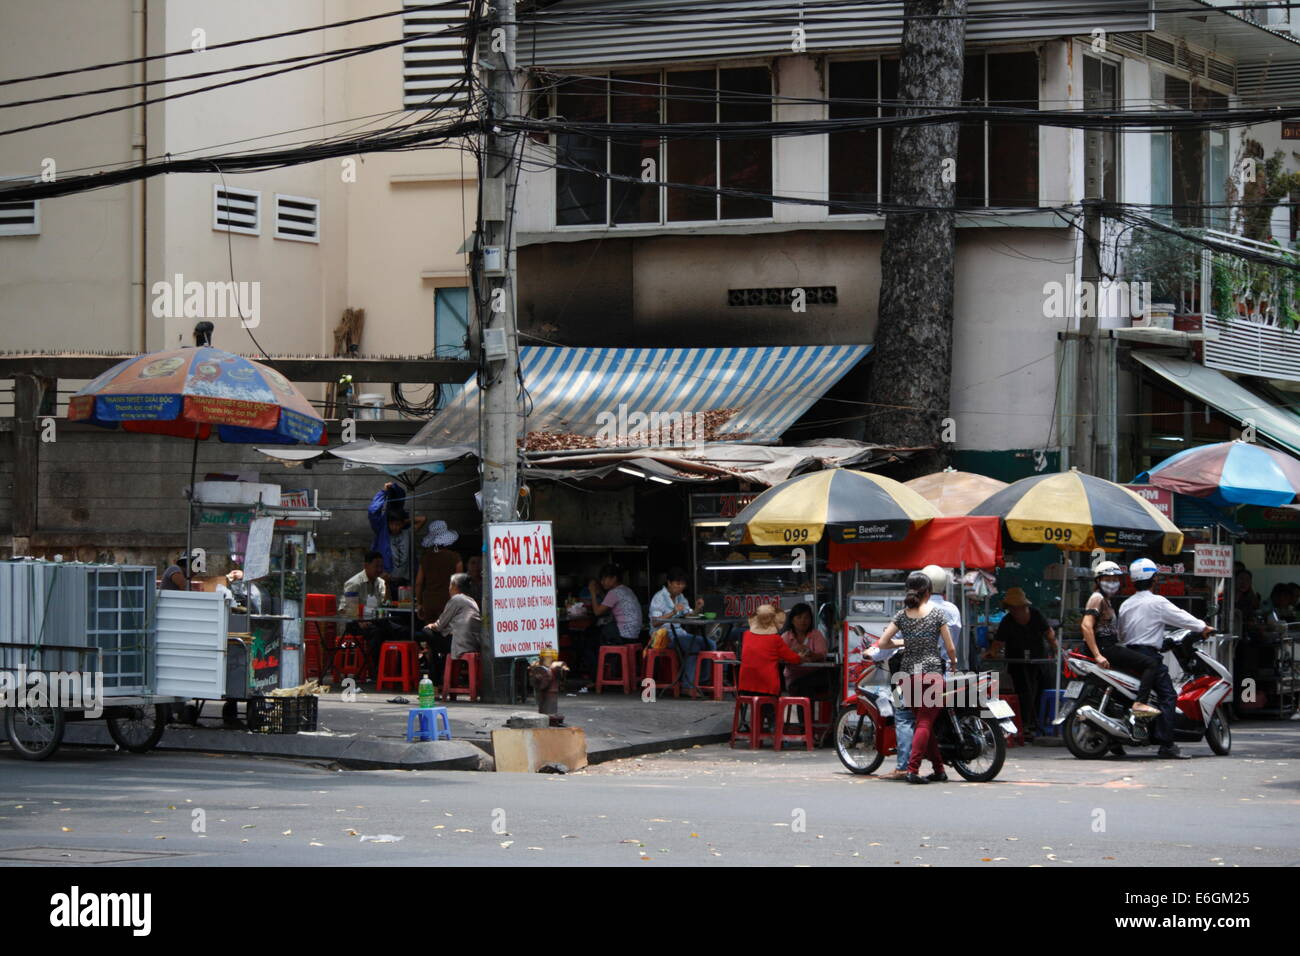 Stock Photo - street food shop in Ho Chi Minh city, Vietnam